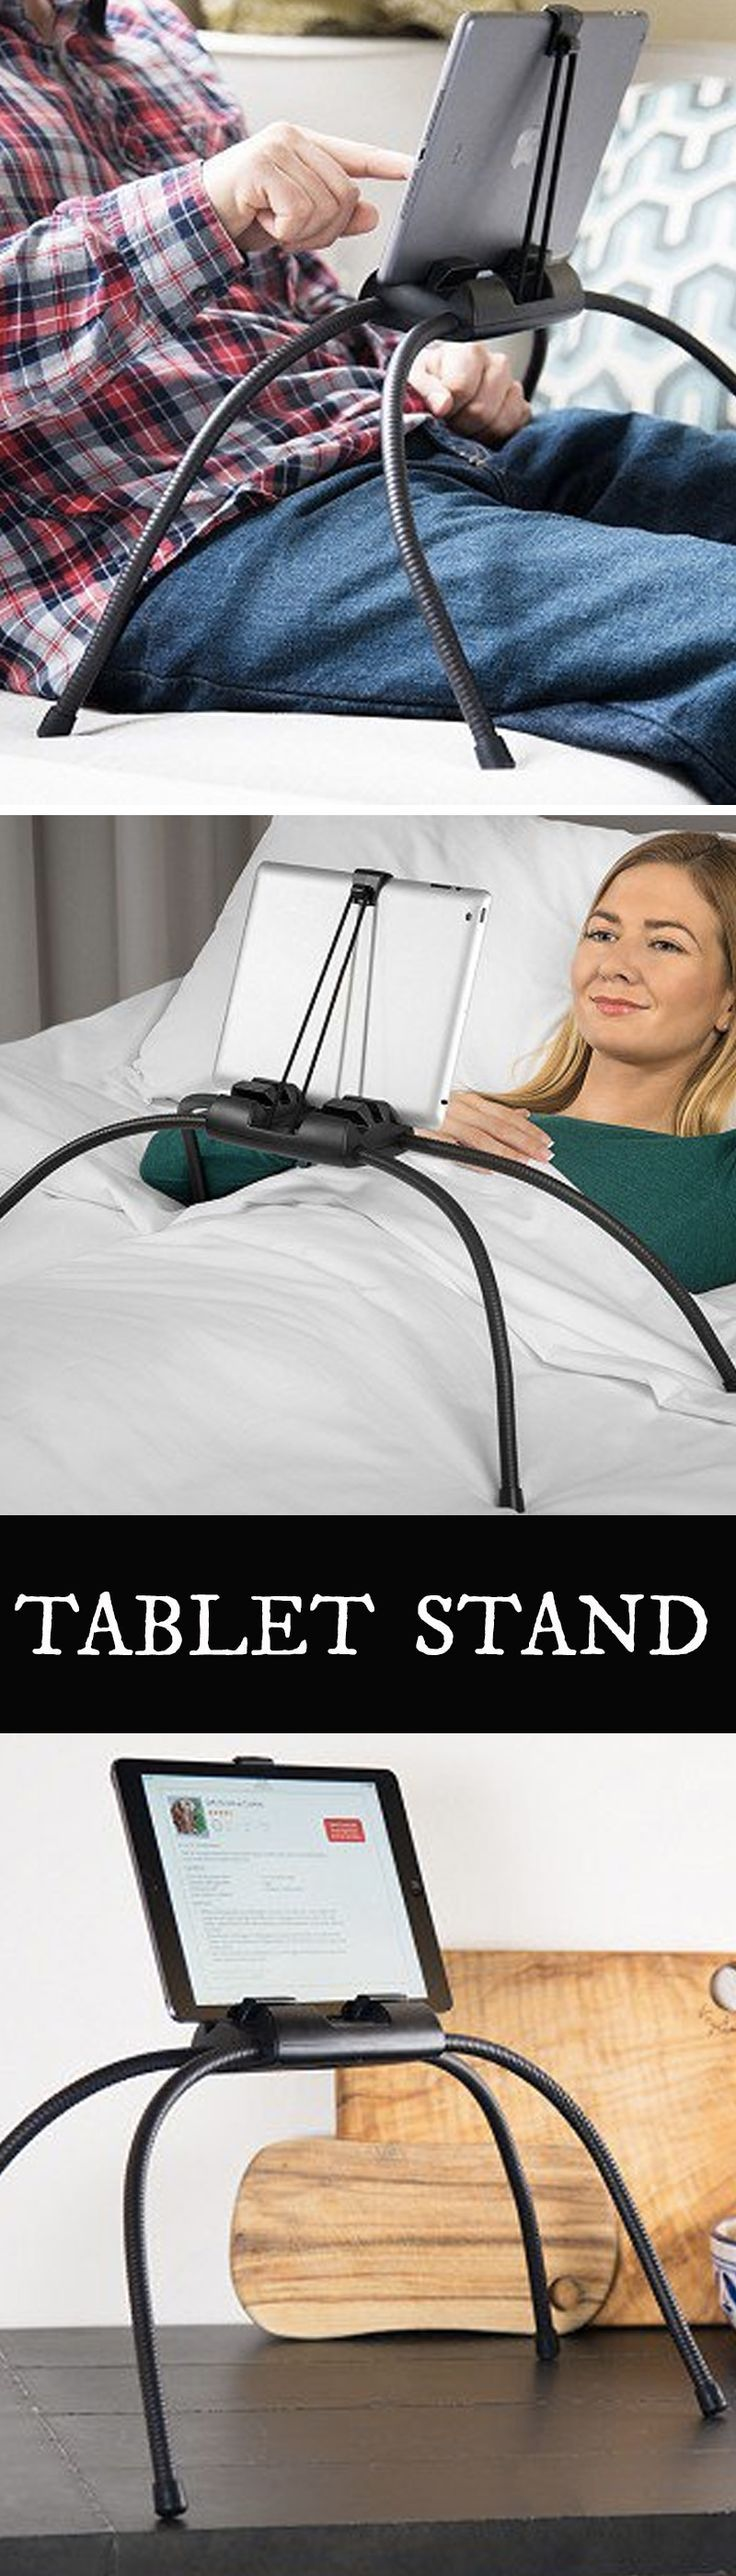 awesome Tablet Stand for Bed by Tablift